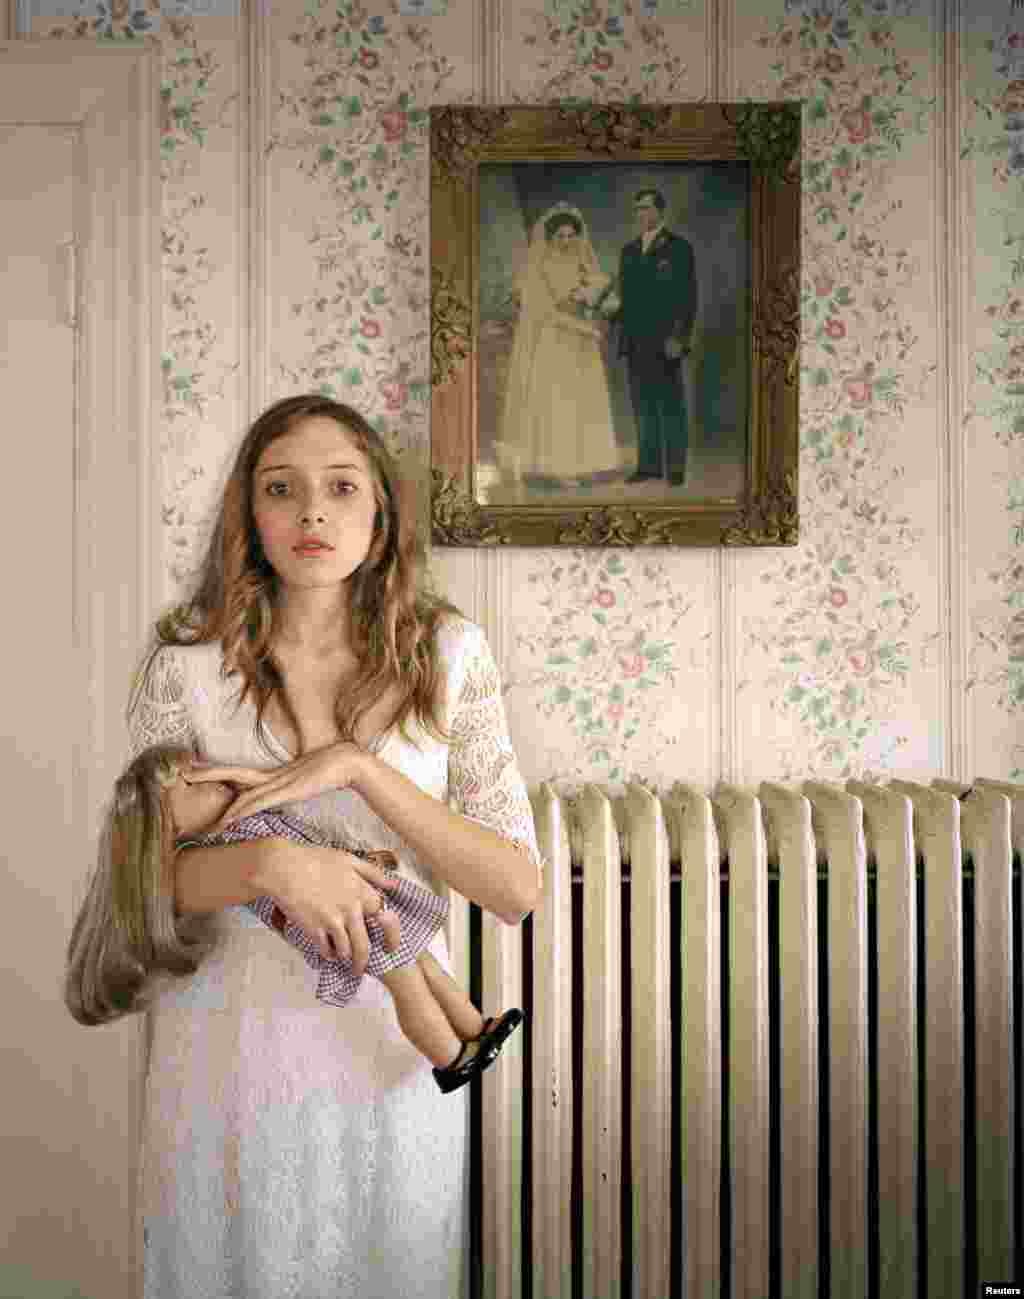 Ilona Szwarc of Poland, a photographer working for Redux Images, won third prize in the People -- Observed Portraits Single category with this picture of Kayla posing with her lookalike doll in front of a portrait of her ancestors in Boston, Massachusetts.